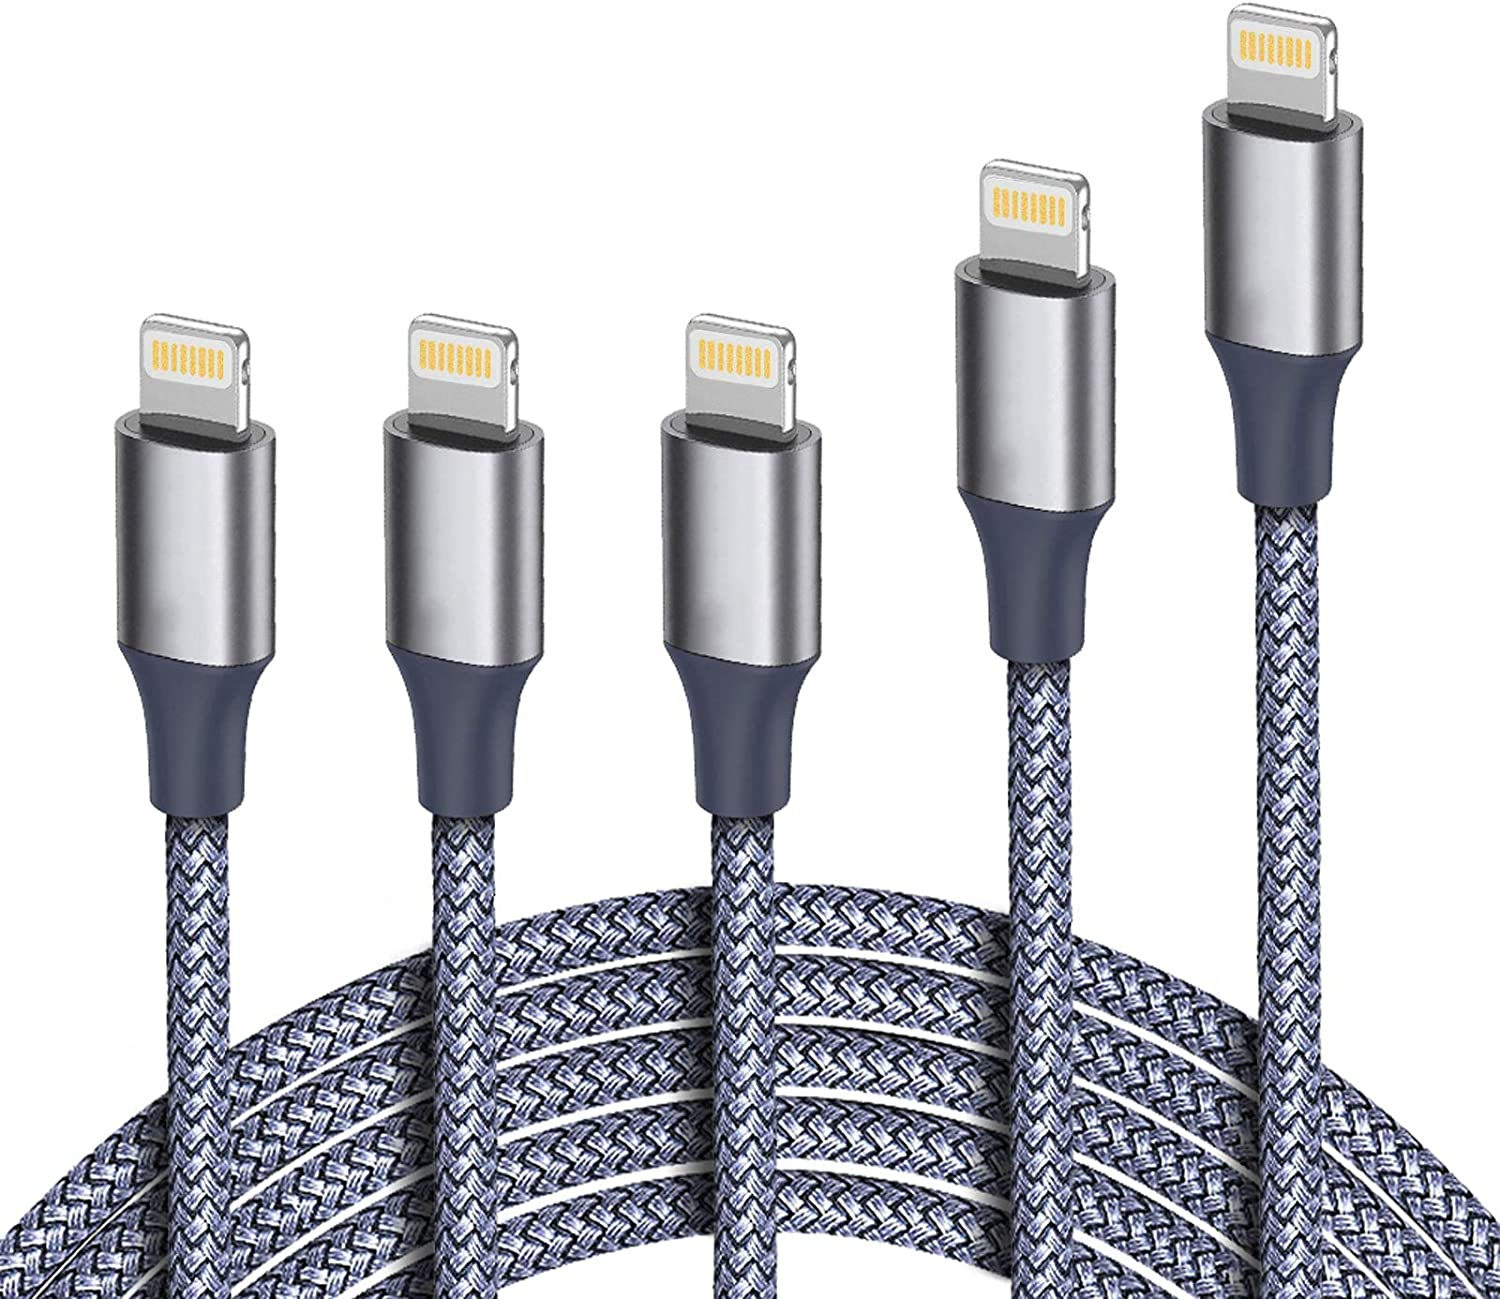 iPhone Charger, MFi Certified Lightning Cable 5Pack (3/3/3/6/10FT) Braided Nylon Fast Charger Cable Compatible Apple iPhone 11/Pro/Xs Max/X/8/7/Plus/6S/6/SE/5S/Air iPad/Mini/iPod (Gray)